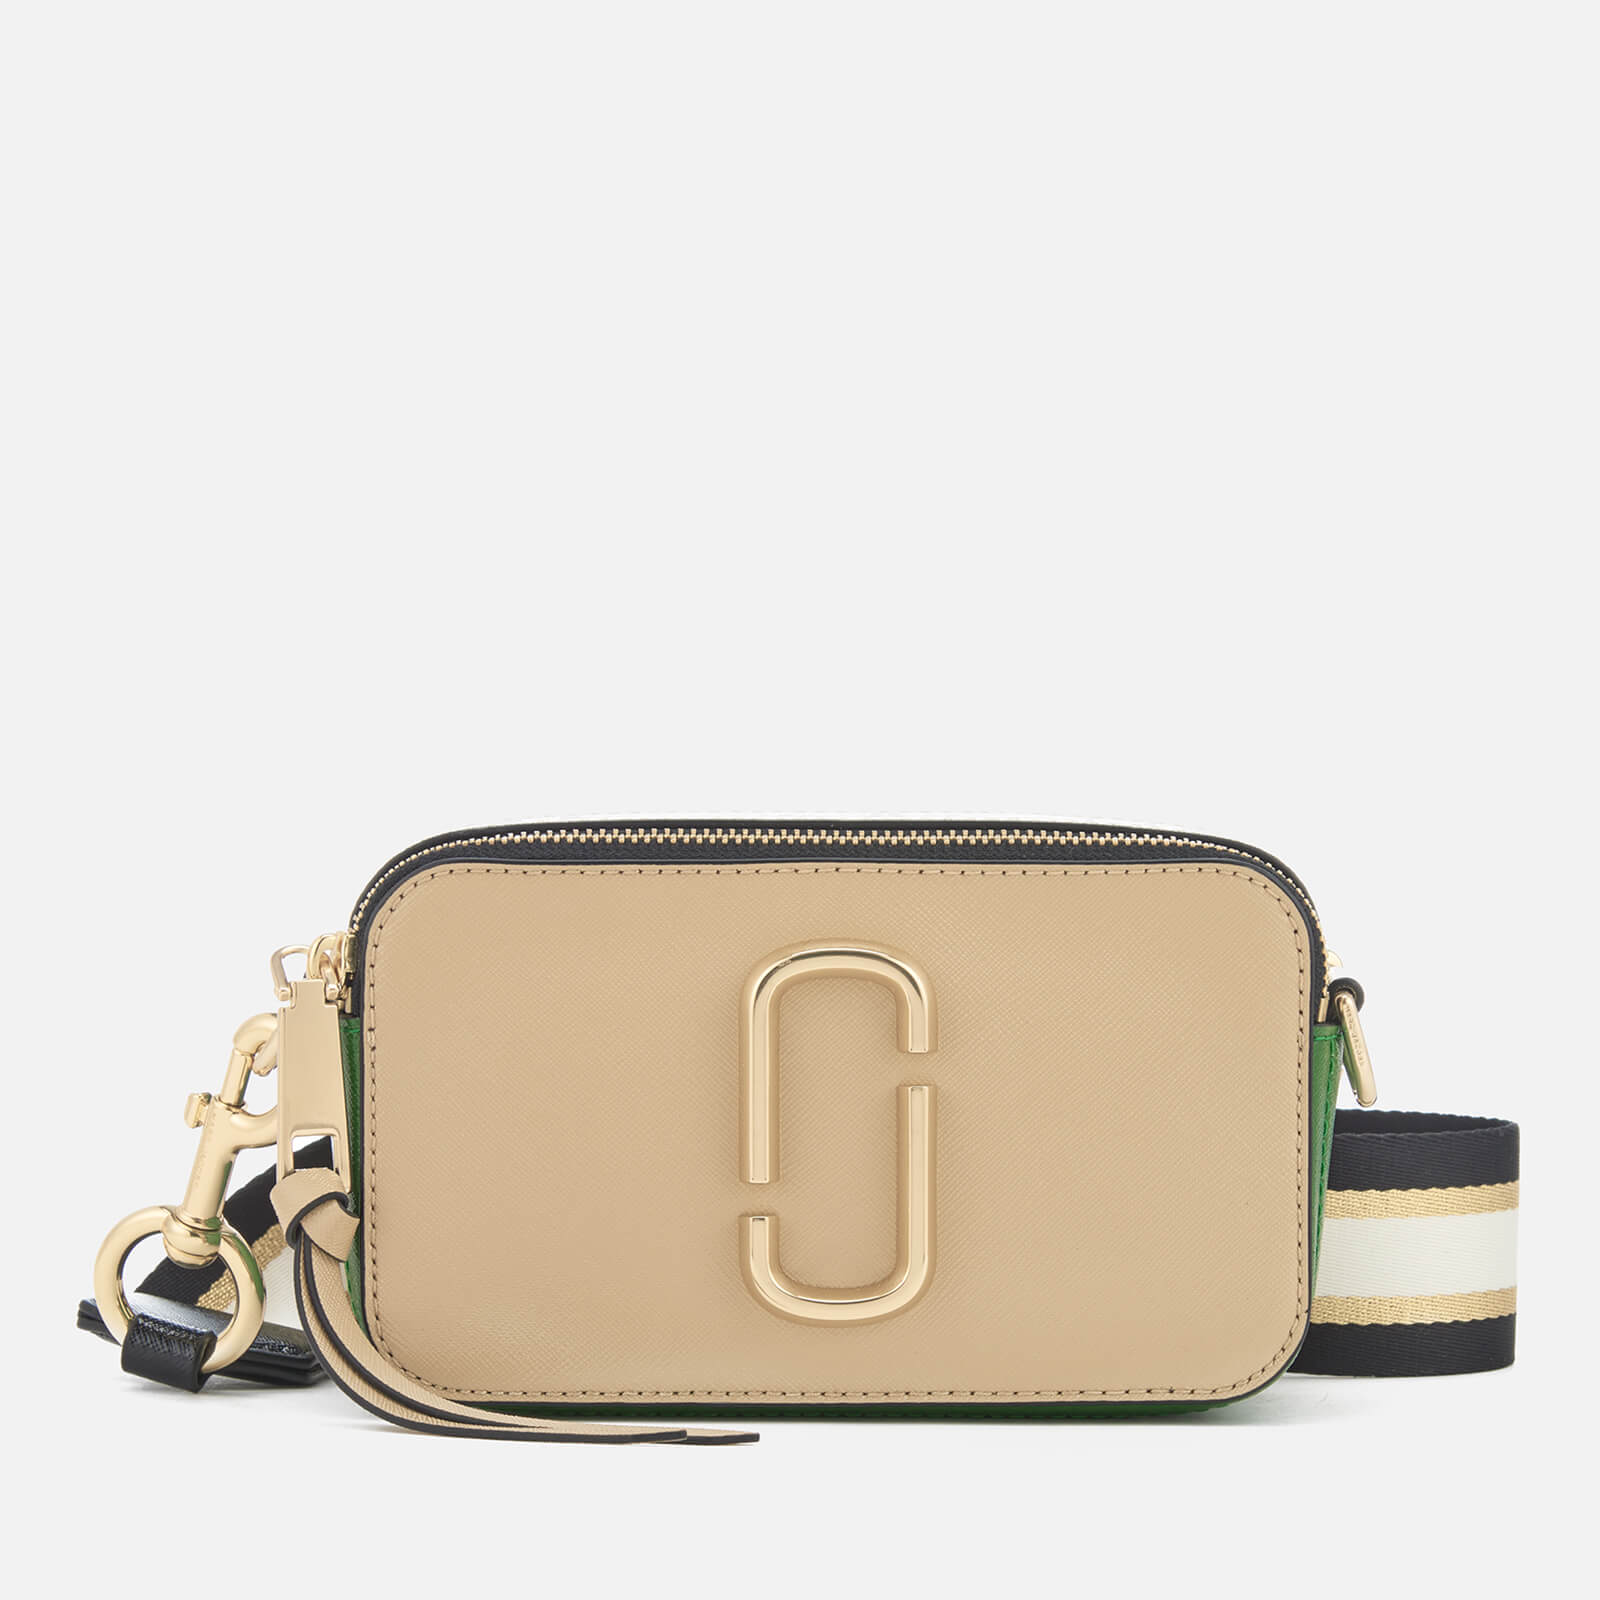 f6fa78c31f Marc Jacobs Women's Snapshot Cross Body Bag - Sandcastle/Multi - Free UK  Delivery over £50